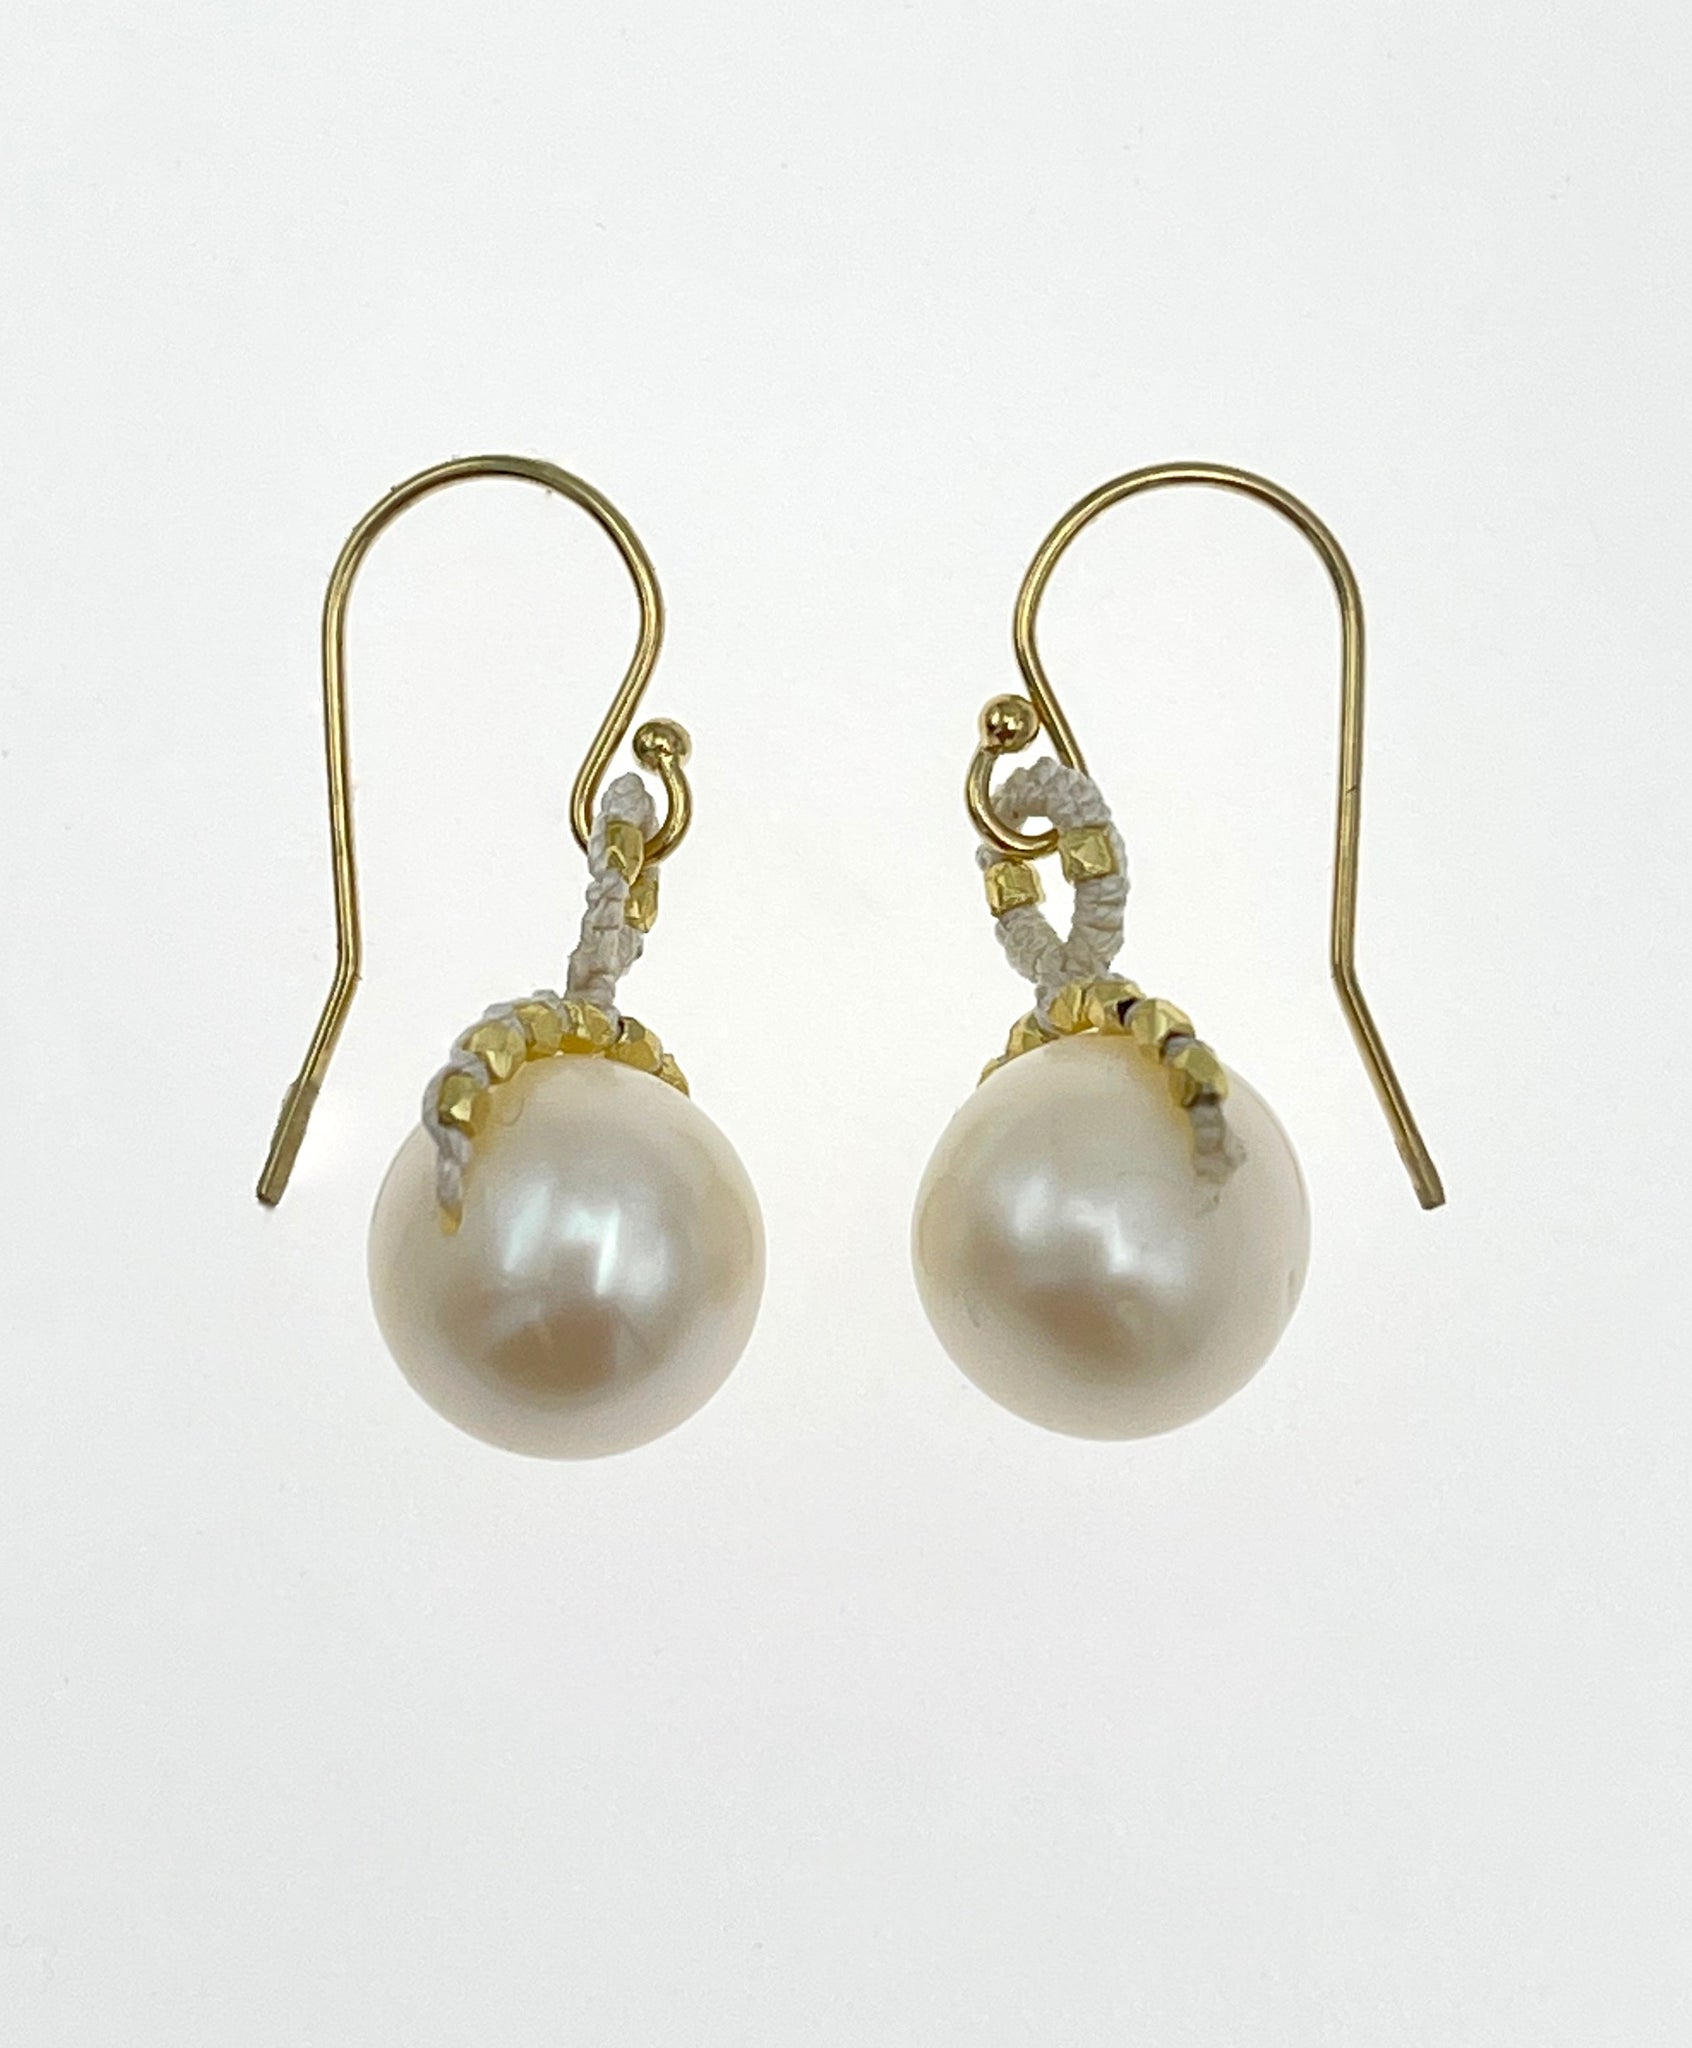 Danielle Welmond White Pearl Earrings